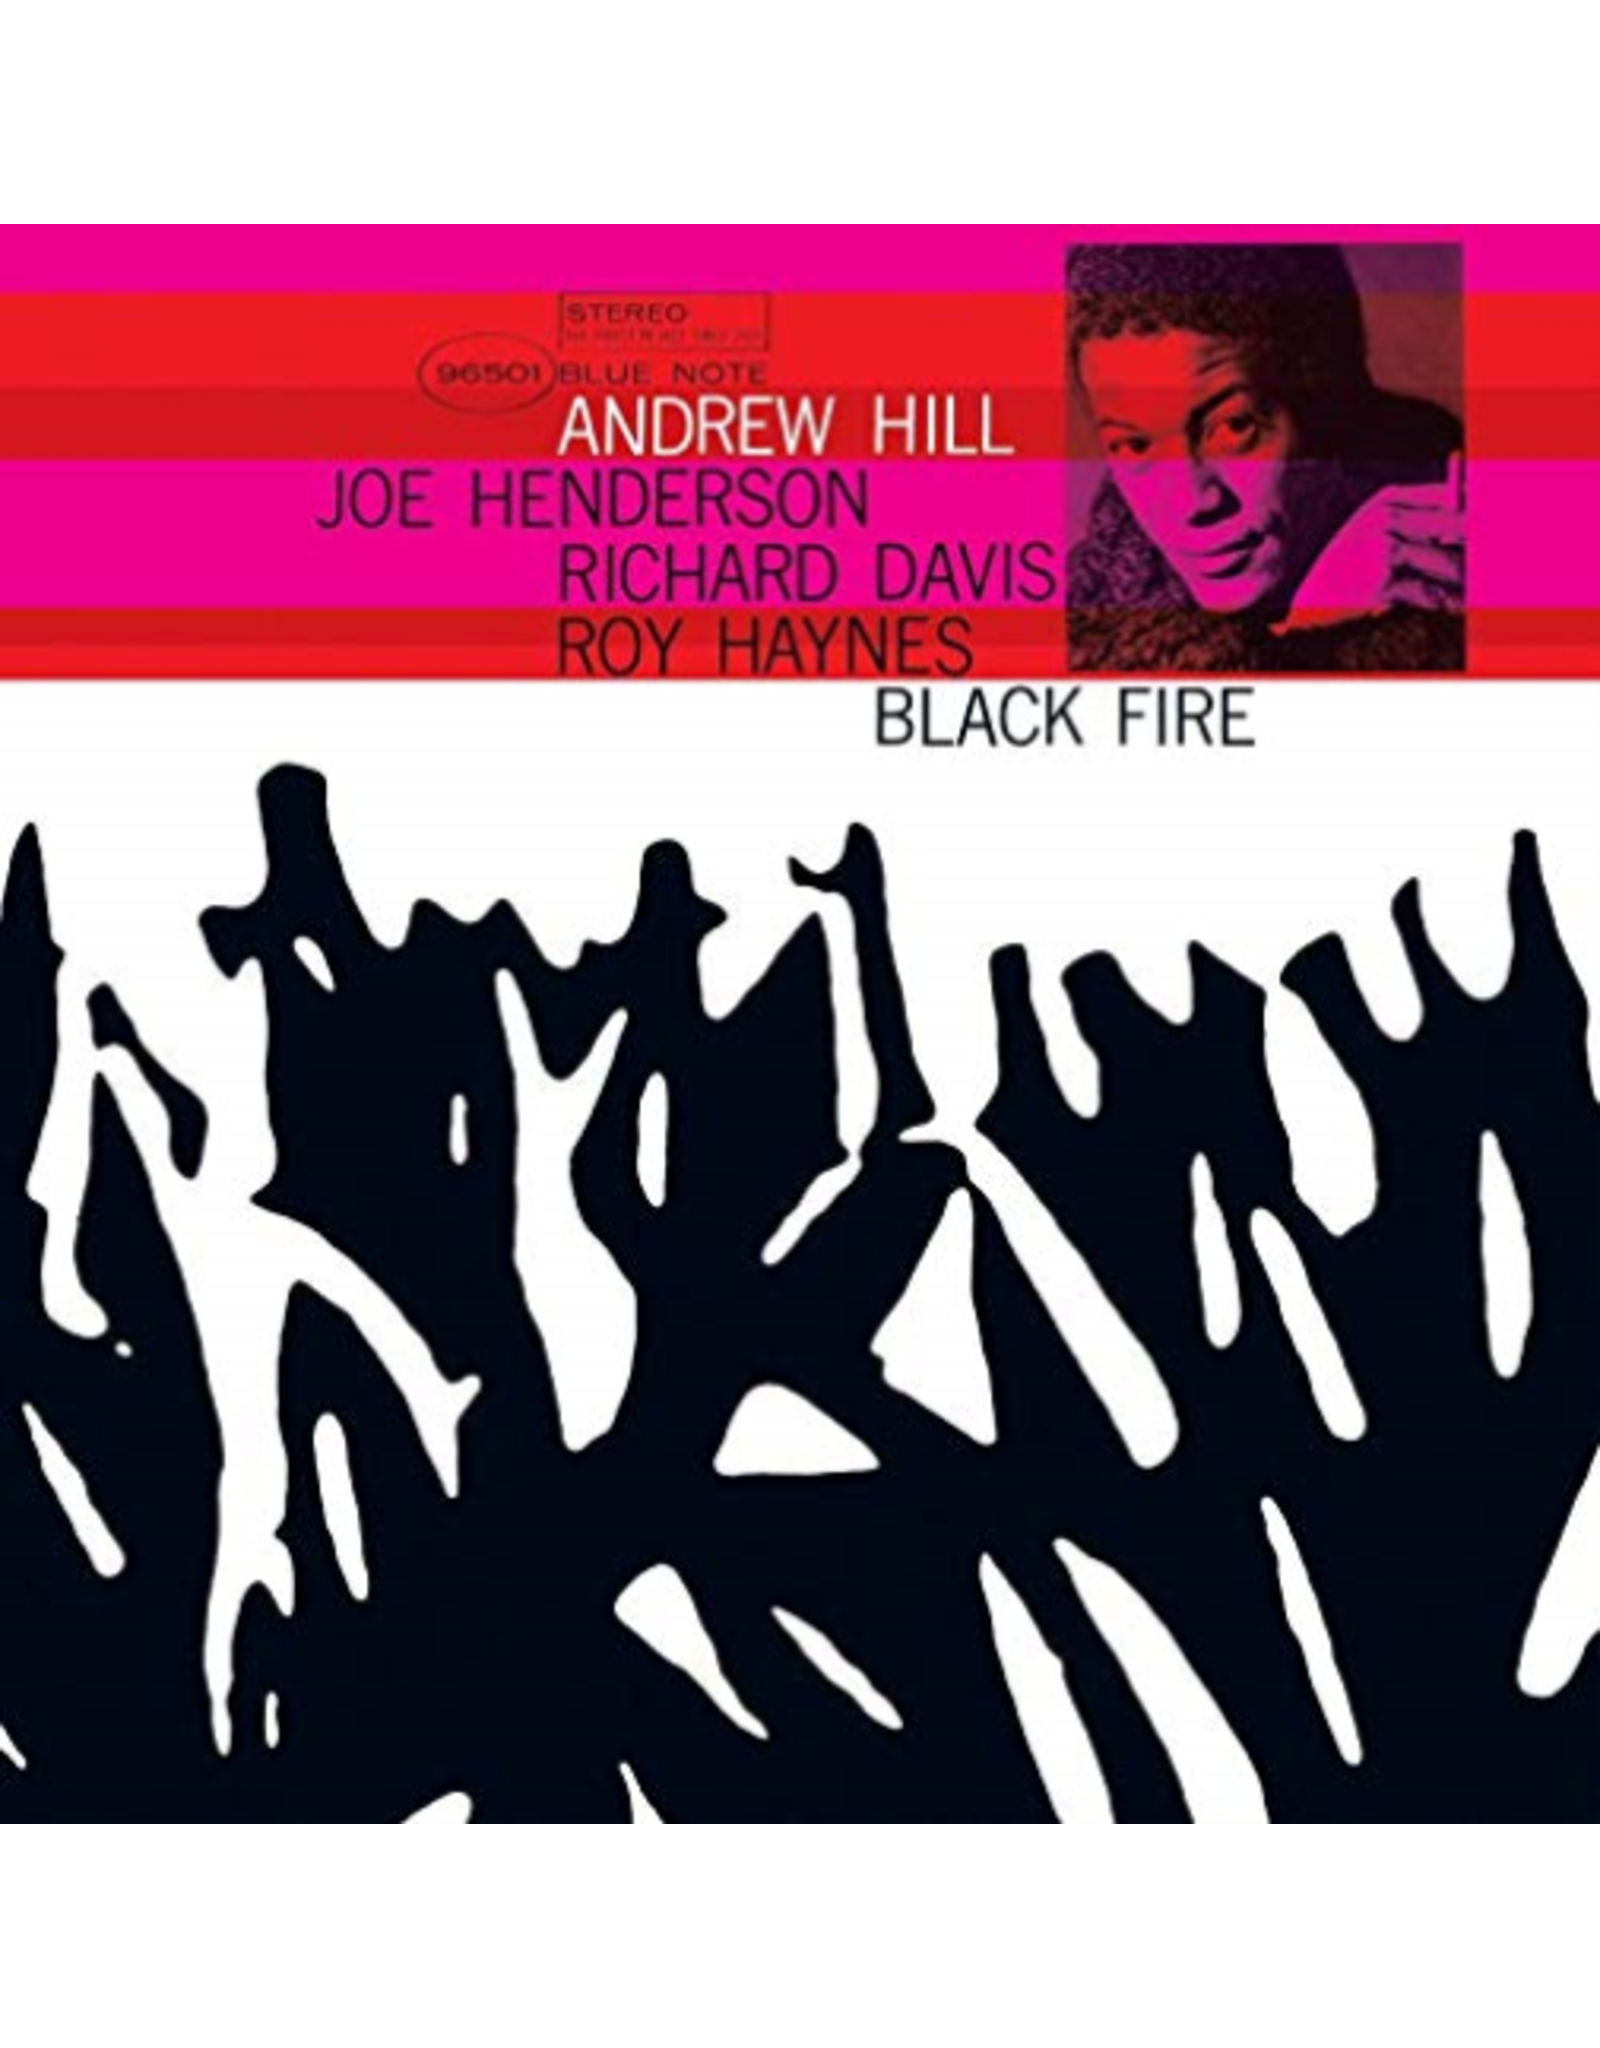 Hill, Andrew - Black Fire LP